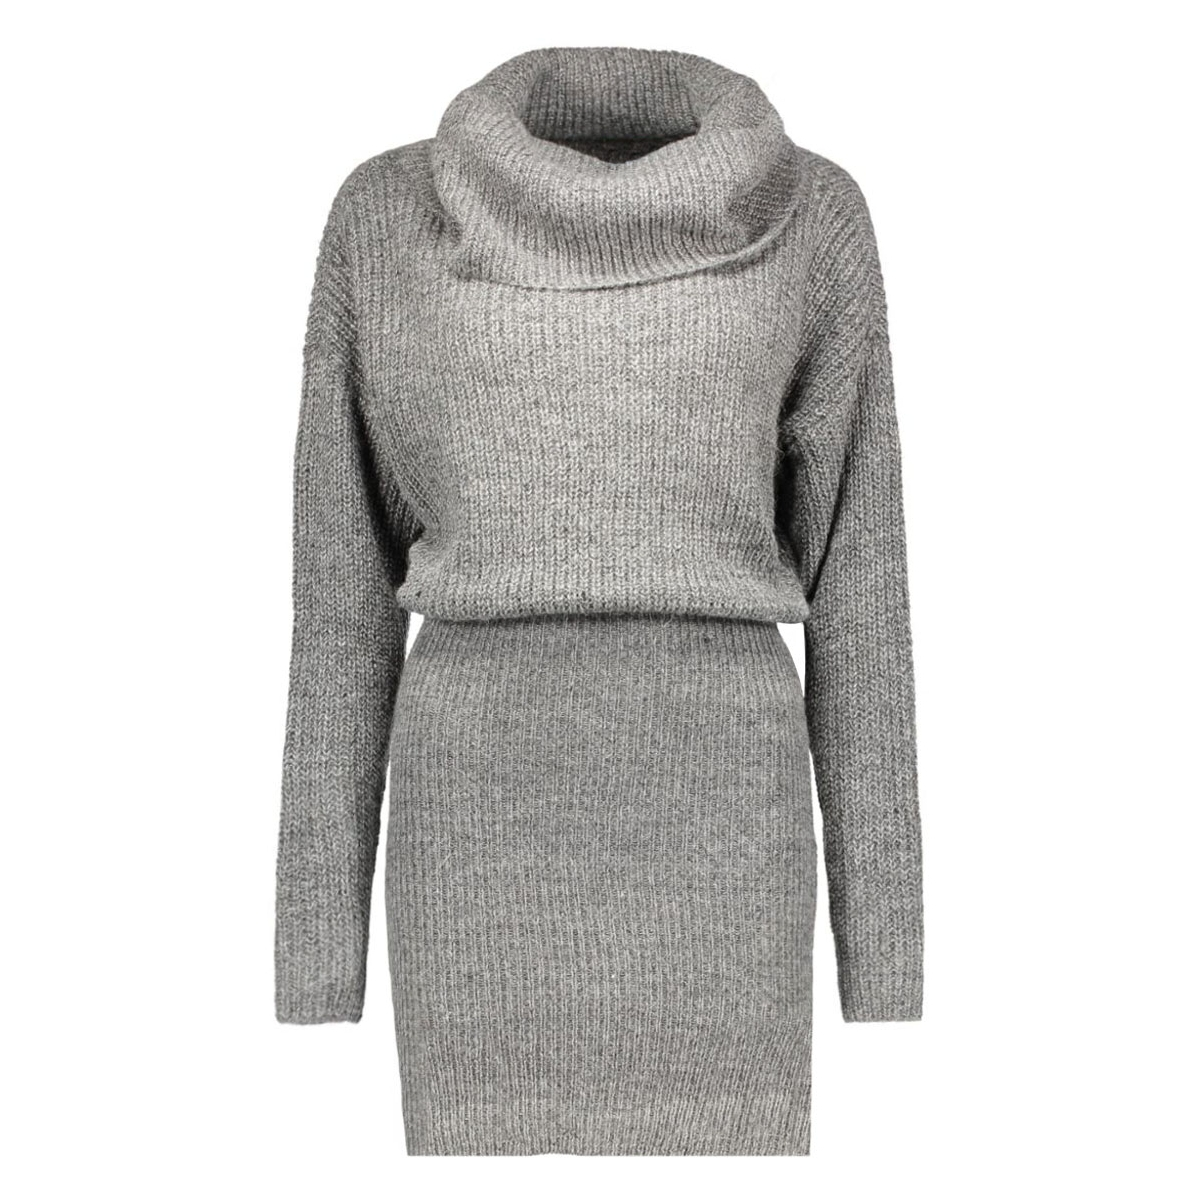 vimatchi rollneck knit dress 14037090 vila jurk dark grey melange